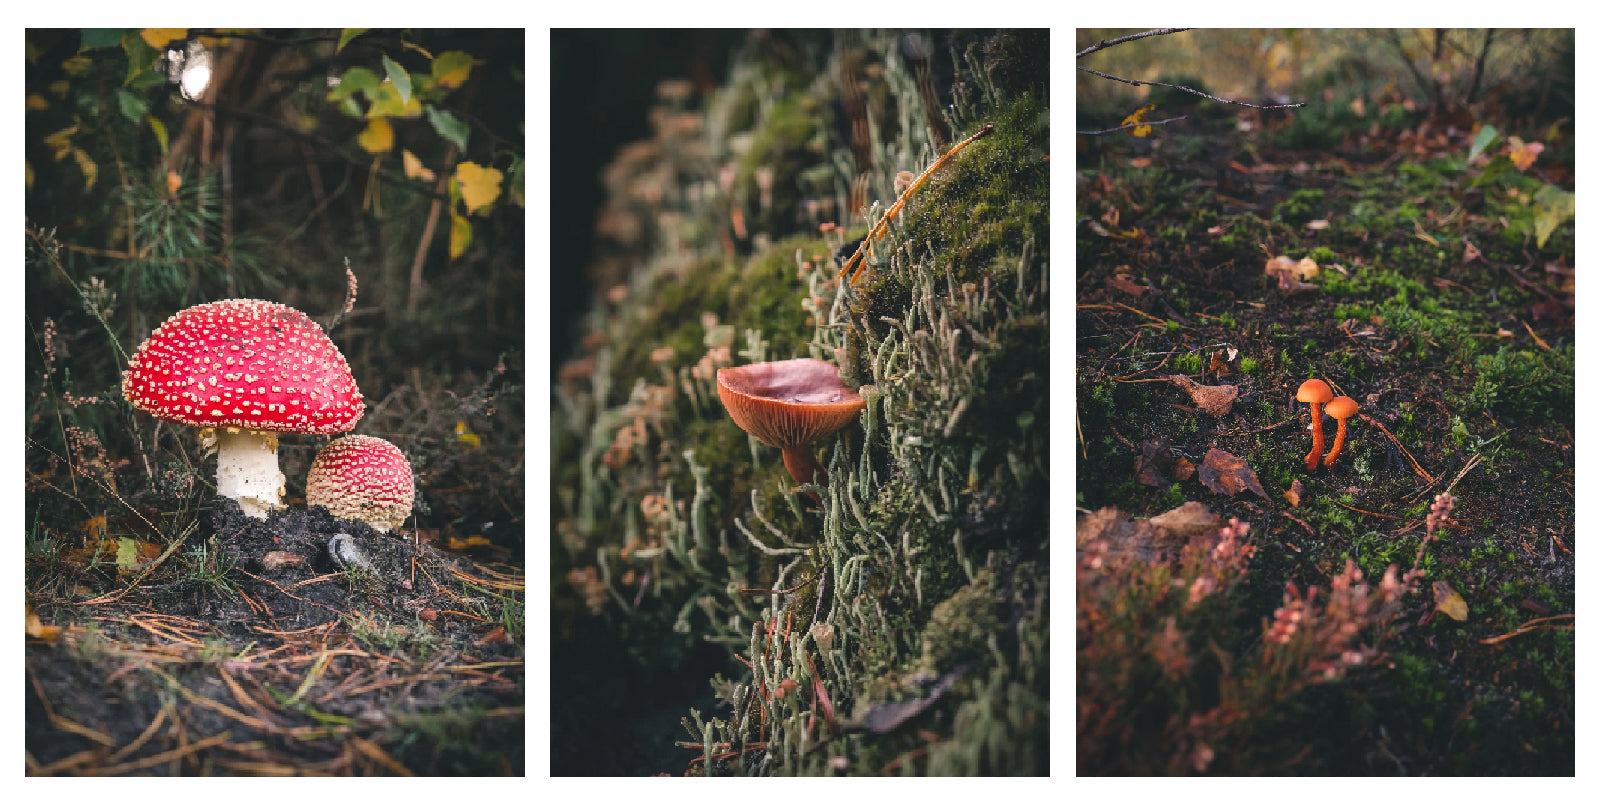 Mushrooms by Rob Turpin